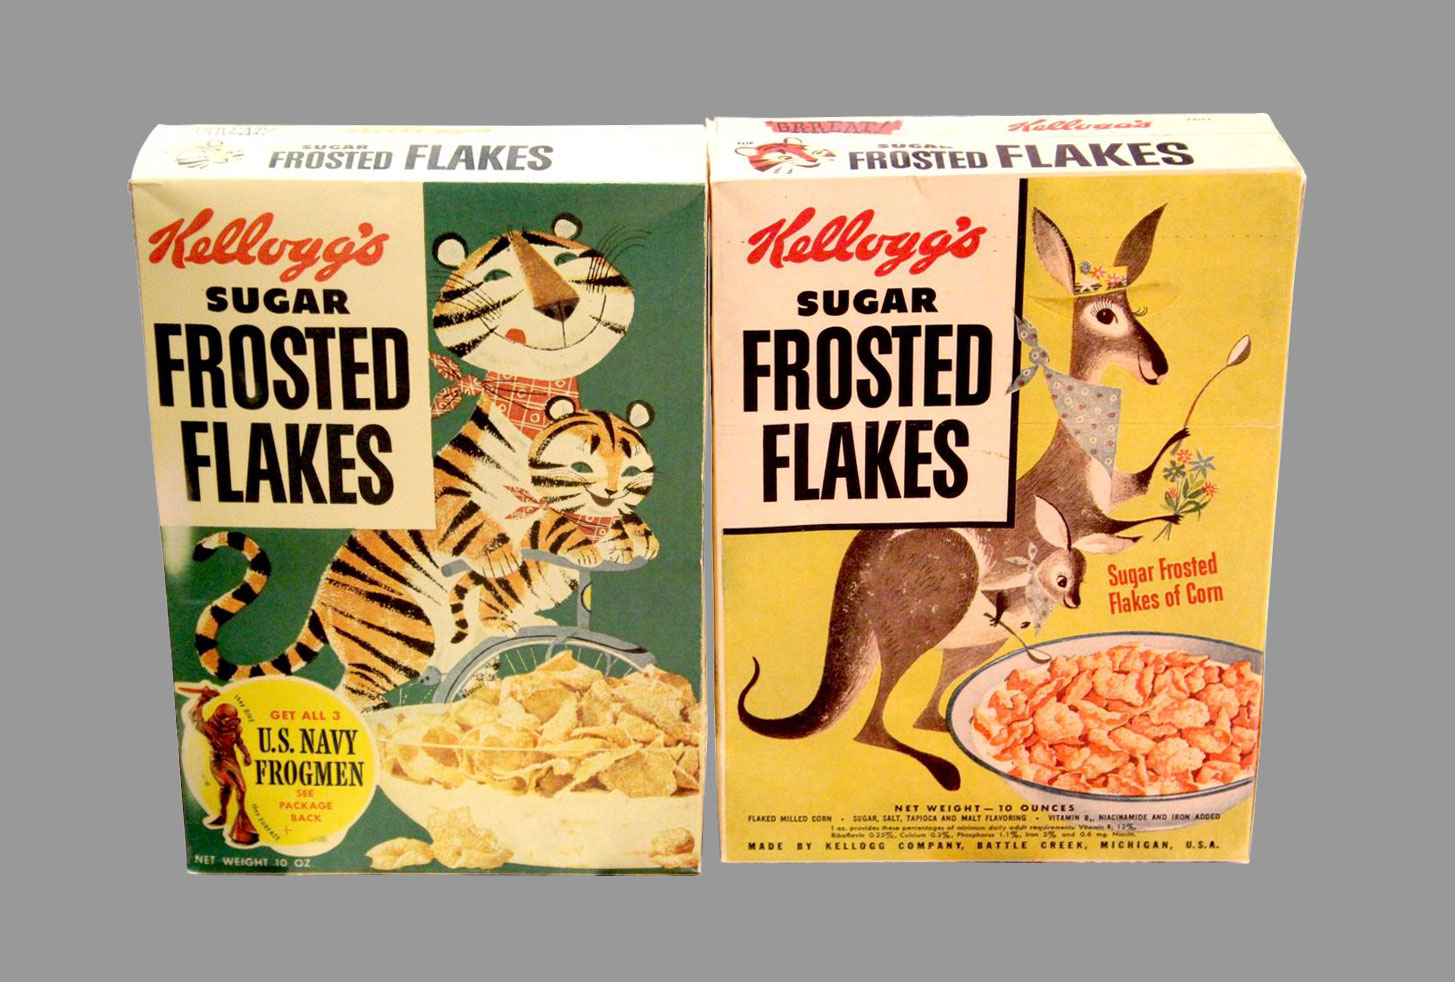 Tony and Katy: 2 members of the Provensen Frosted Flakes Zoo